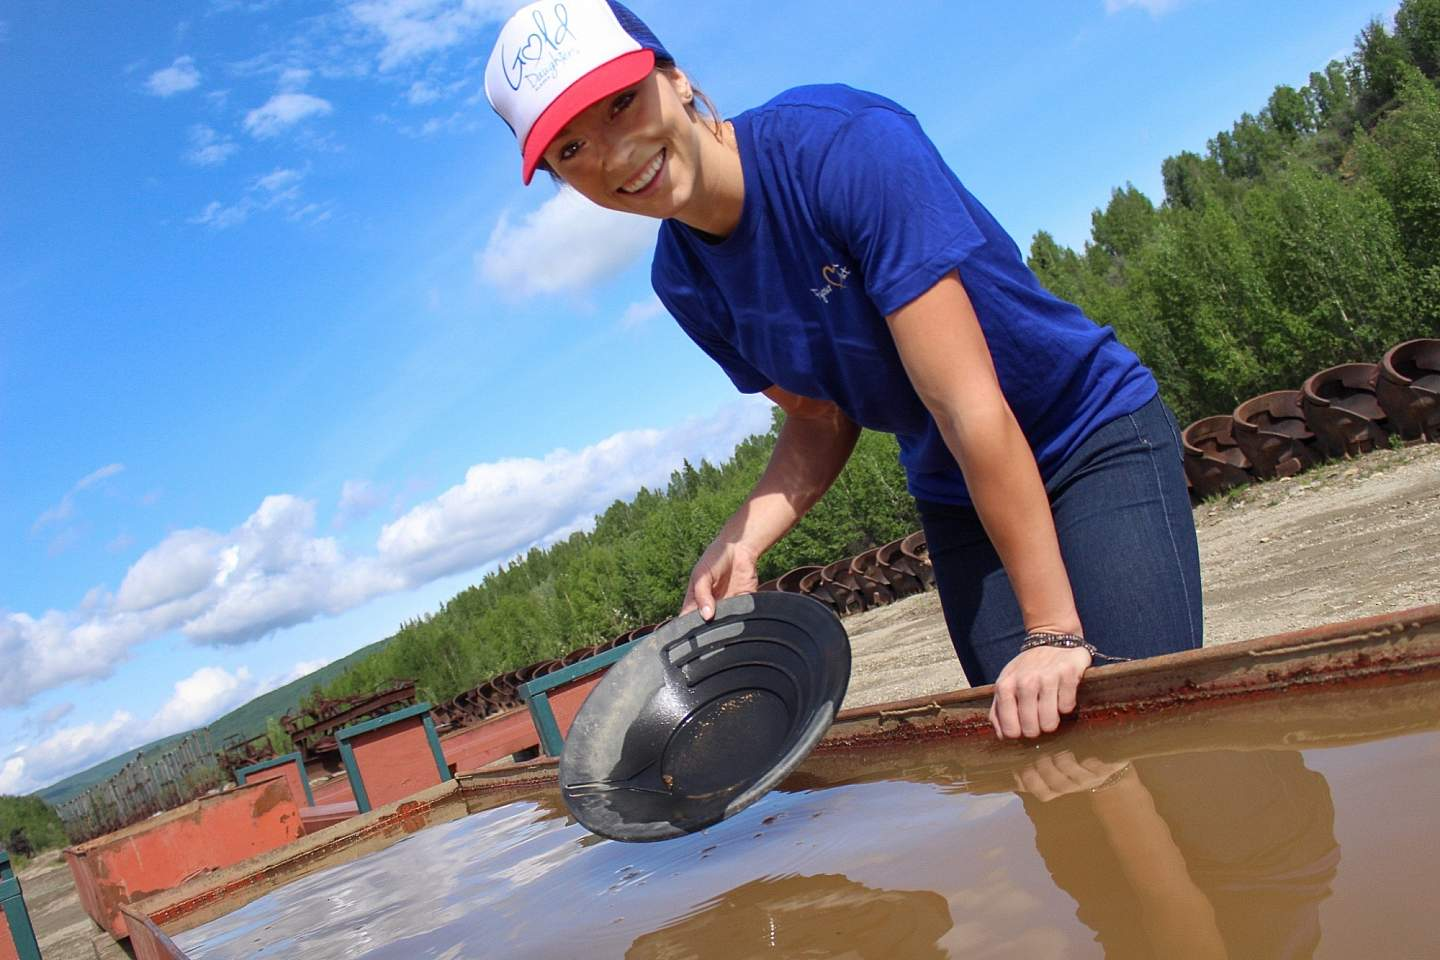 A smiling woman pans for gold outside.